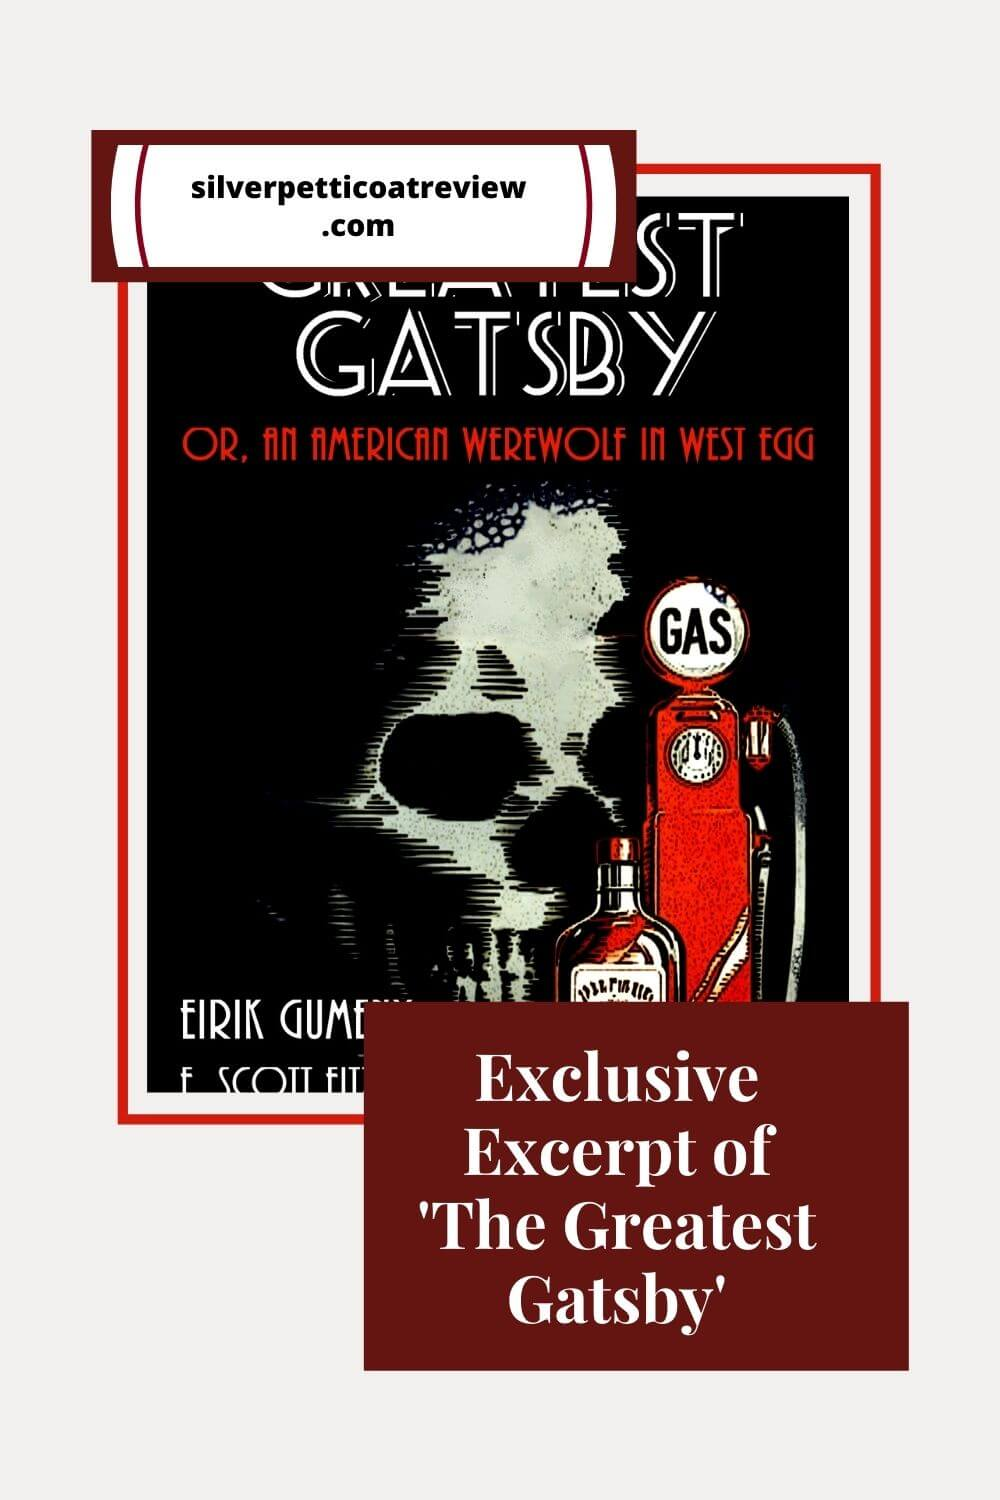 Exclusive Excerpt of The Greatest Gatsby; Pinterest image with book cover